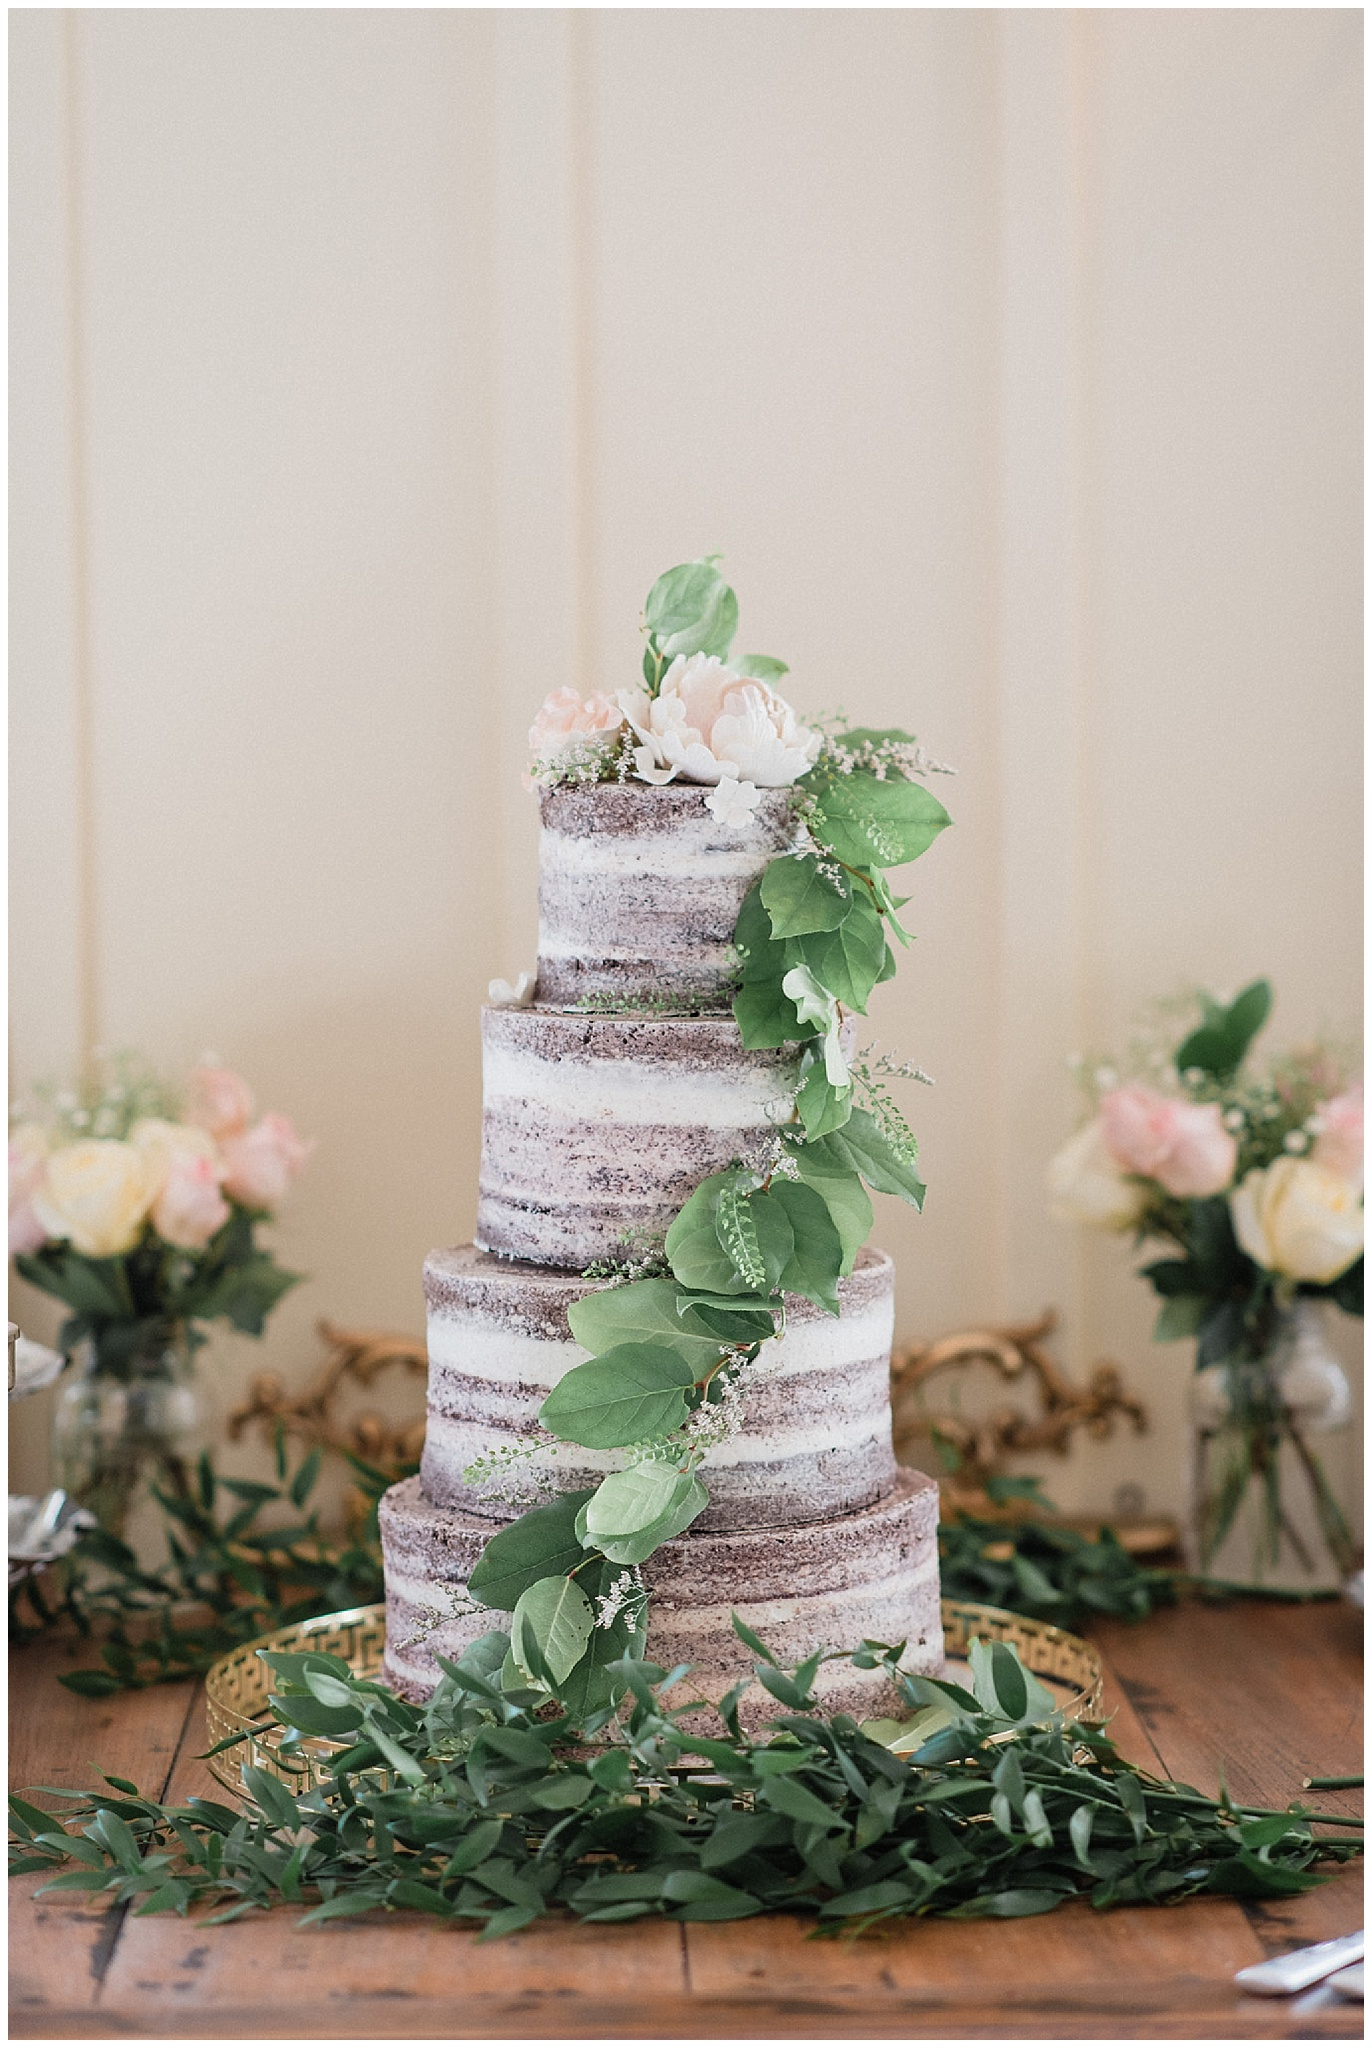 Almost naked four tier cake by Sammy Cakes, photographed by Jenn Kavanagh Photography